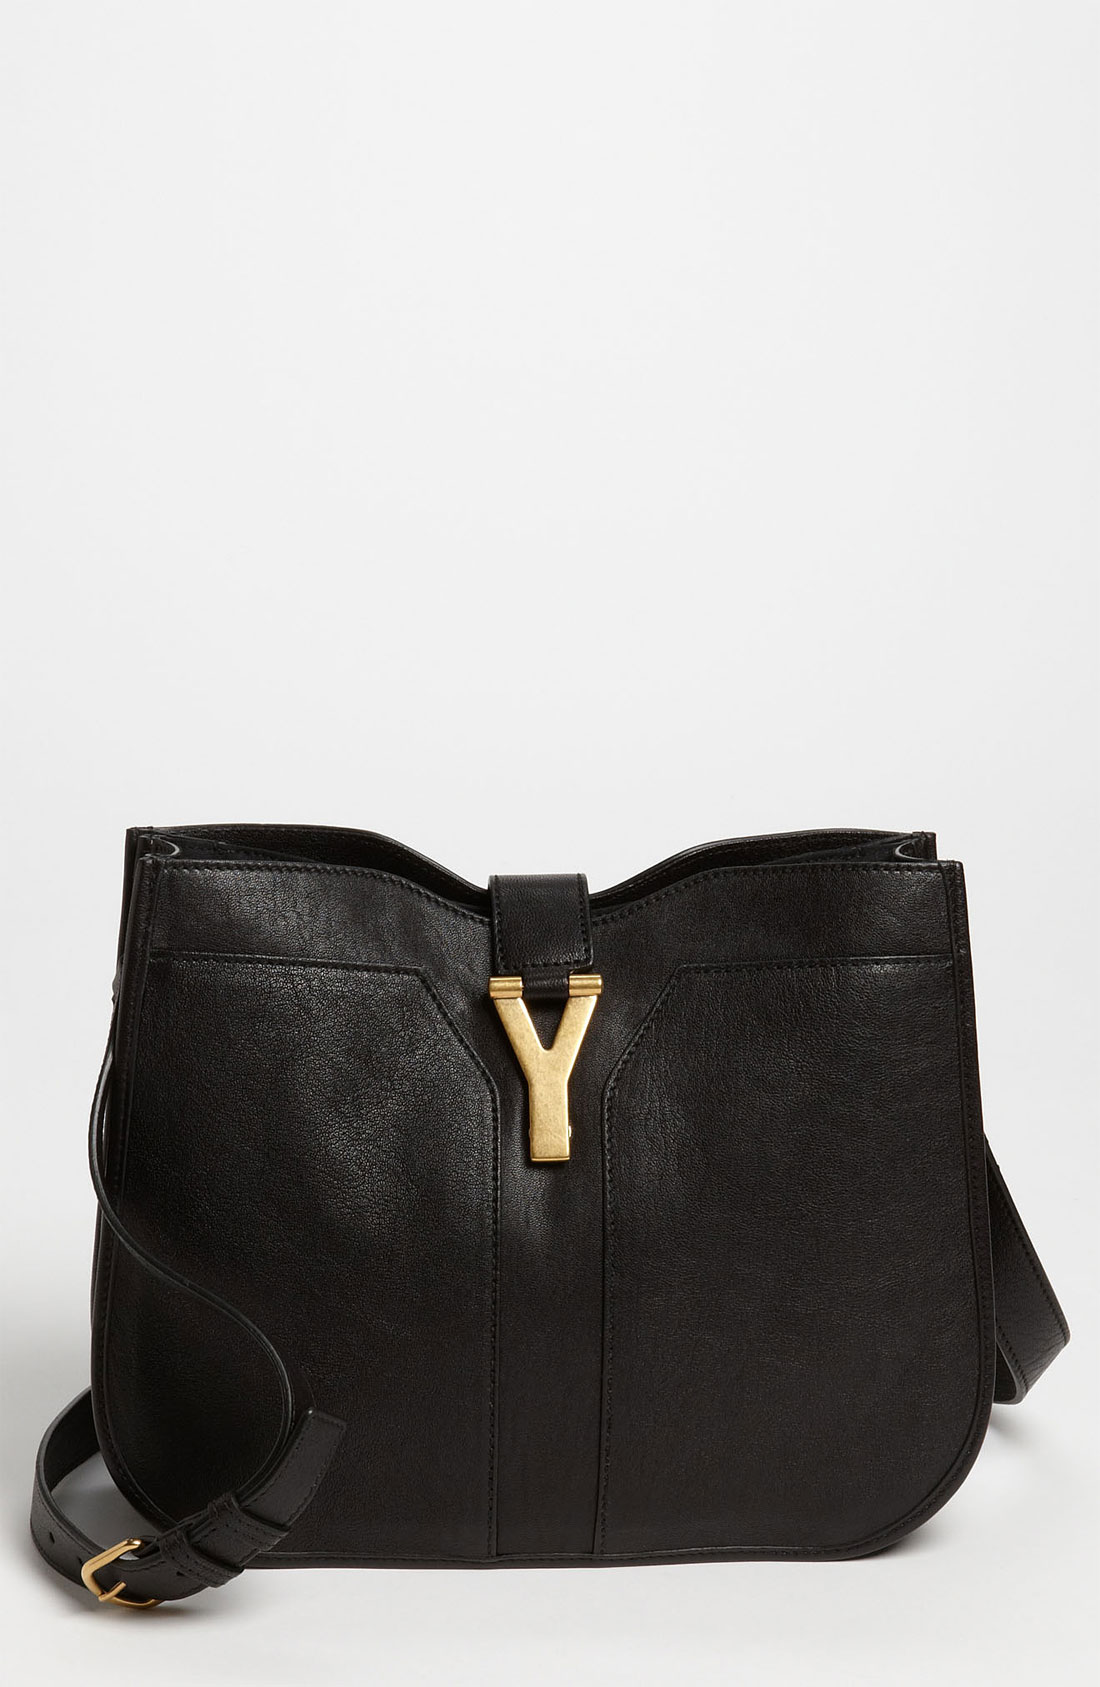 Saint laurent Cabas Chyc Medium Shoulder Bag in Black (nero) | Lyst